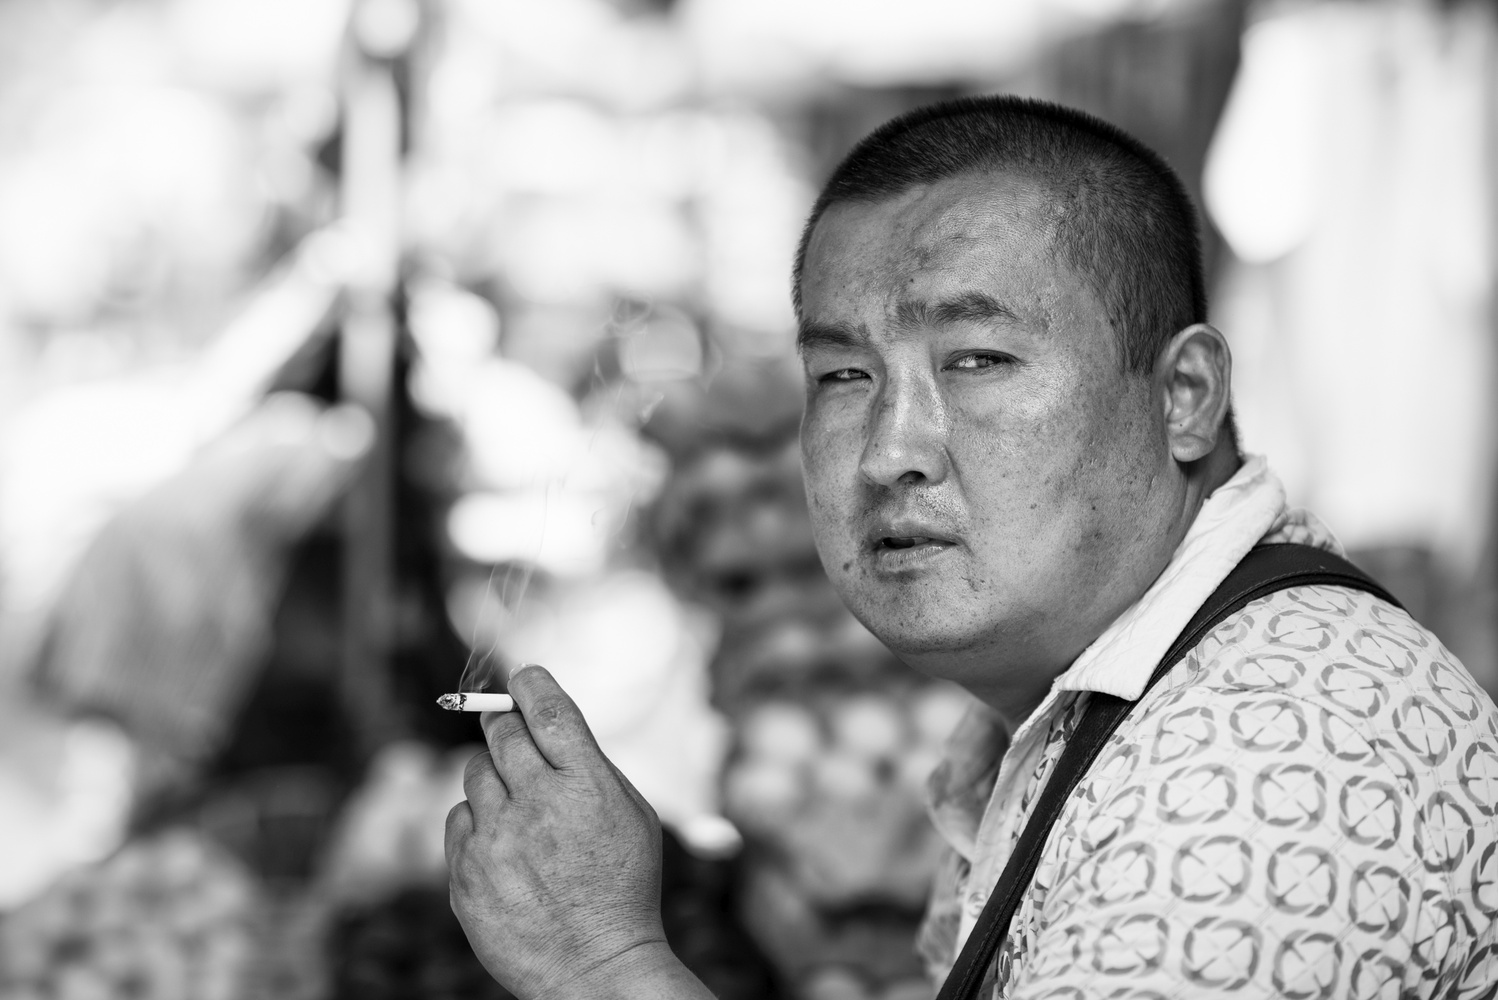 A chinese man smoking in a street market in Xi'An by Léonard Rodriguez